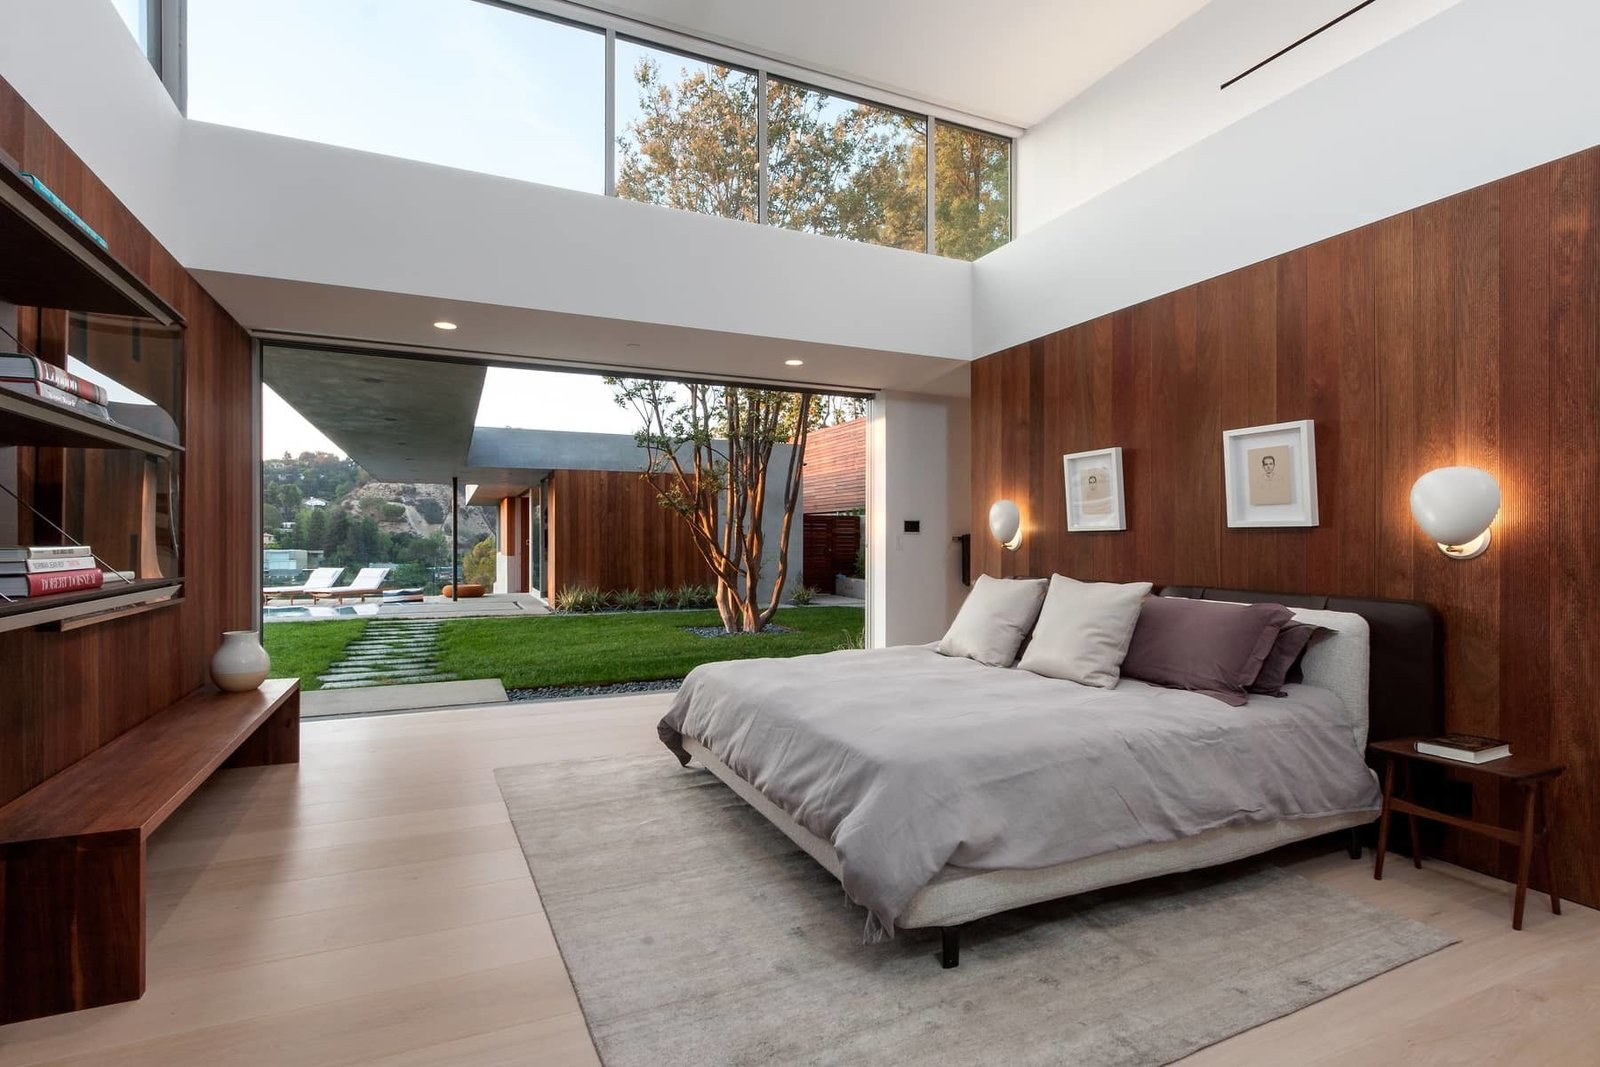 The master bedroom also has seamless outdoor access. The covered breezeway leads to the guest house, comprised of its own living space, kitchen, and bedroom, currently being used as an office.